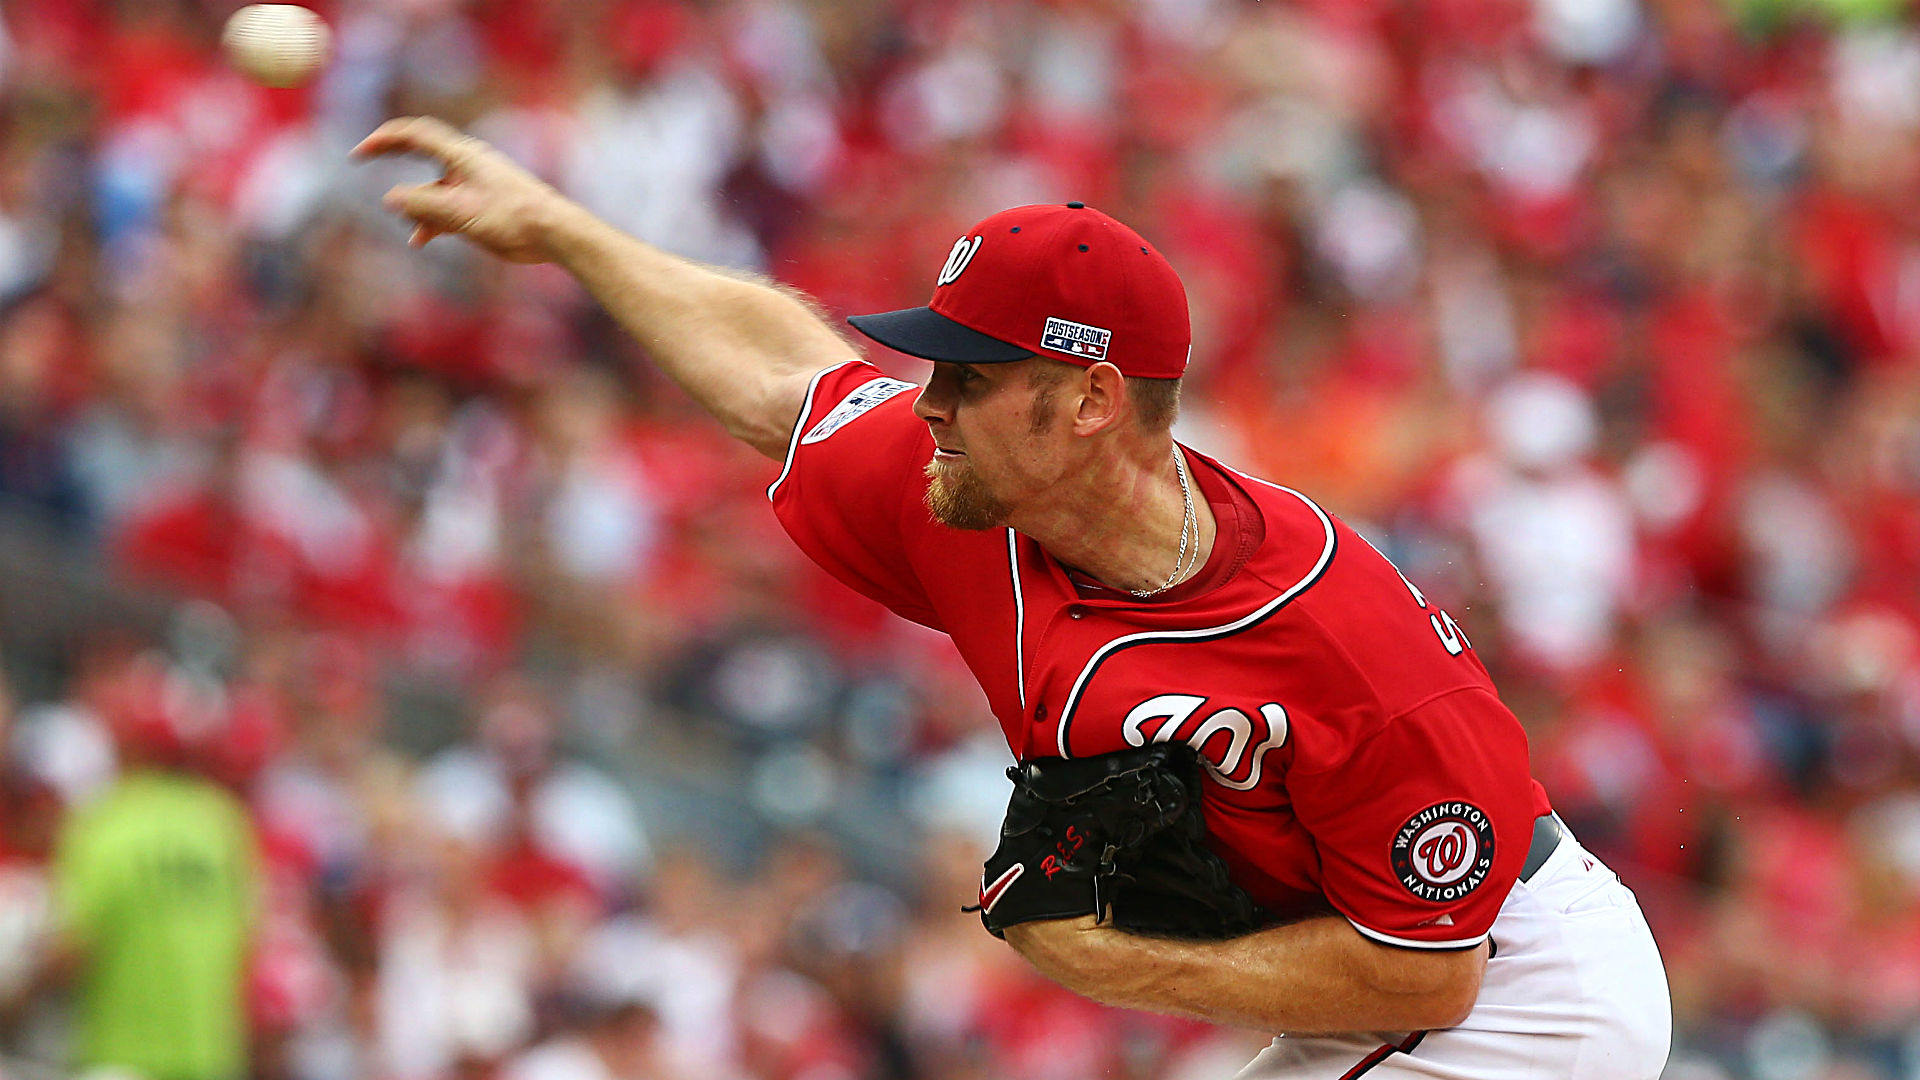 Stephen Strasburg exits start with an apparent injury